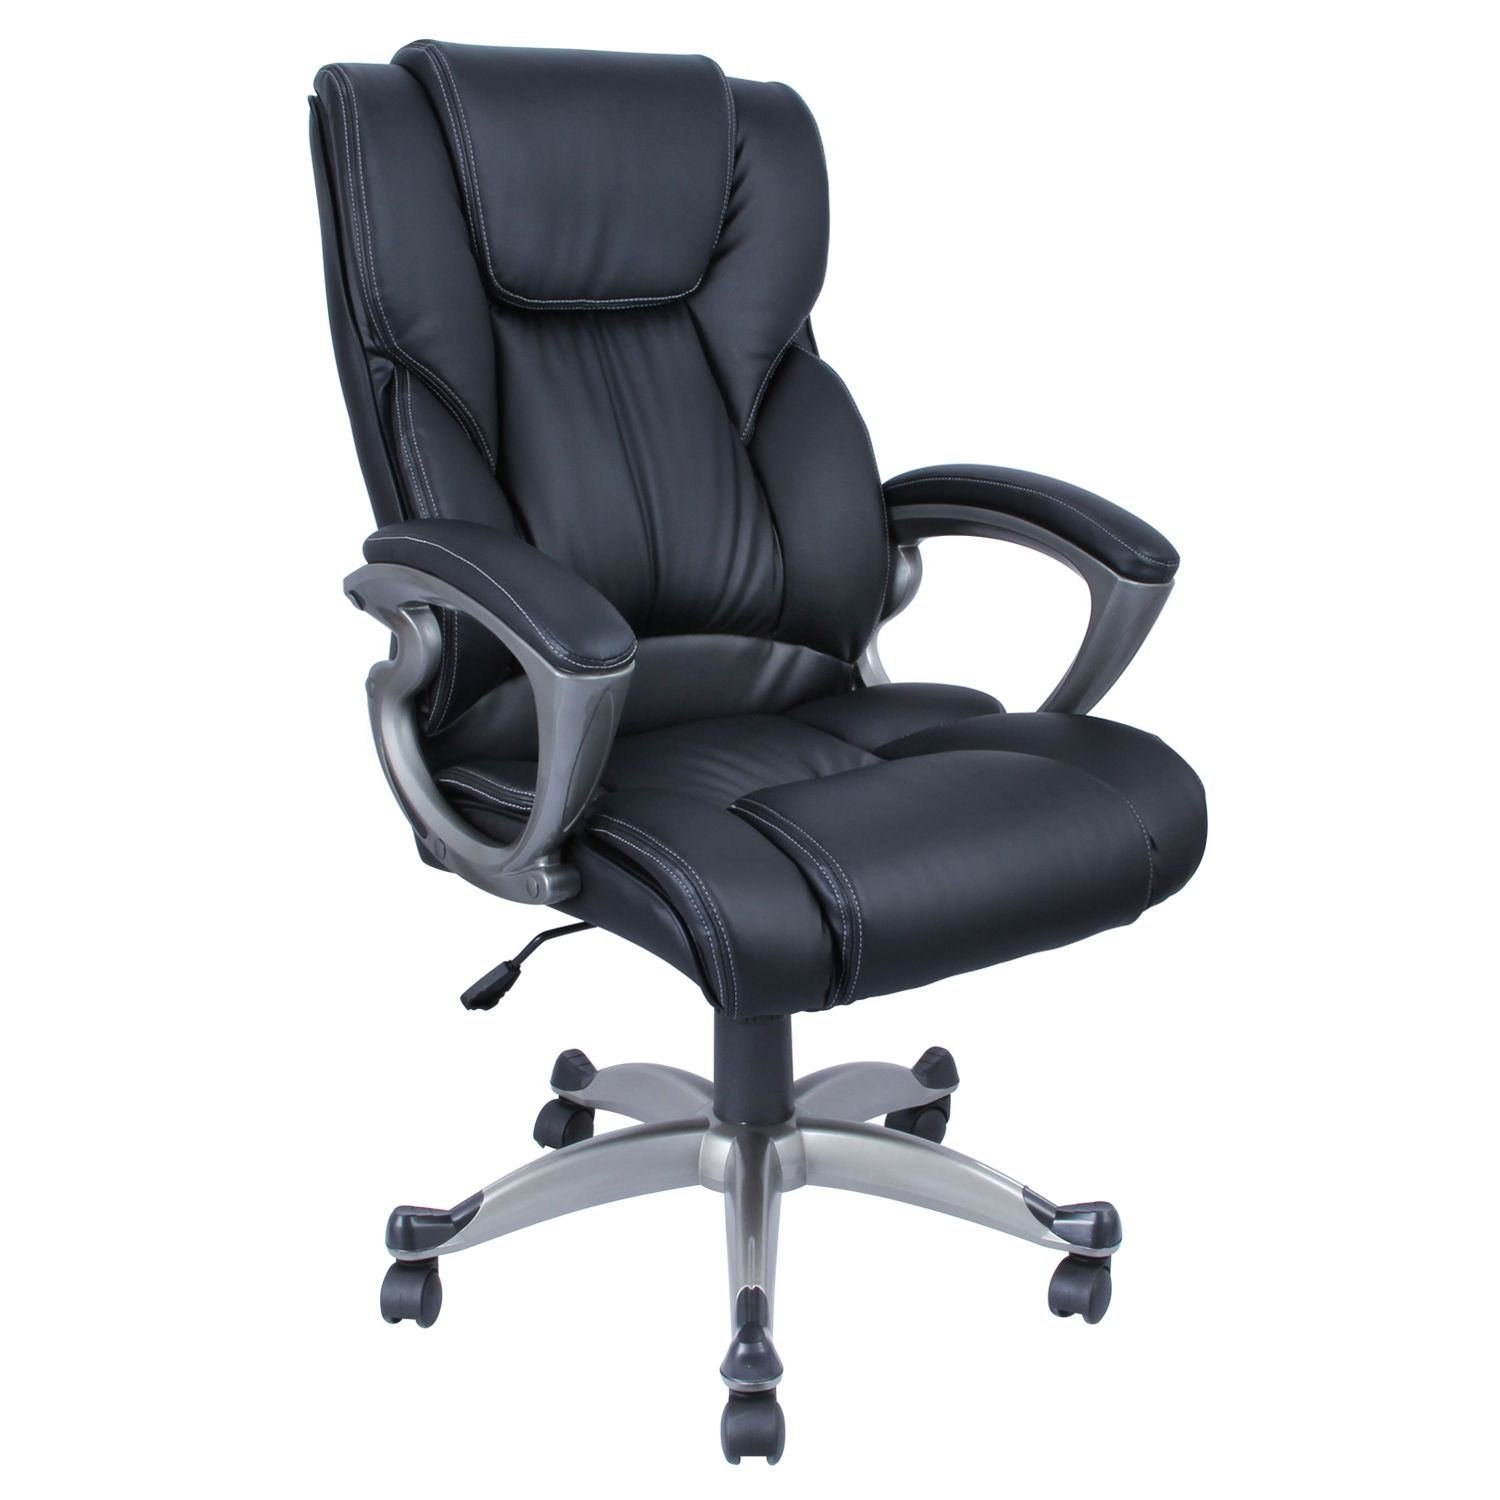 Pu Leather High Back Office Chair Executive Task Ergonomic Computer Desk - Black